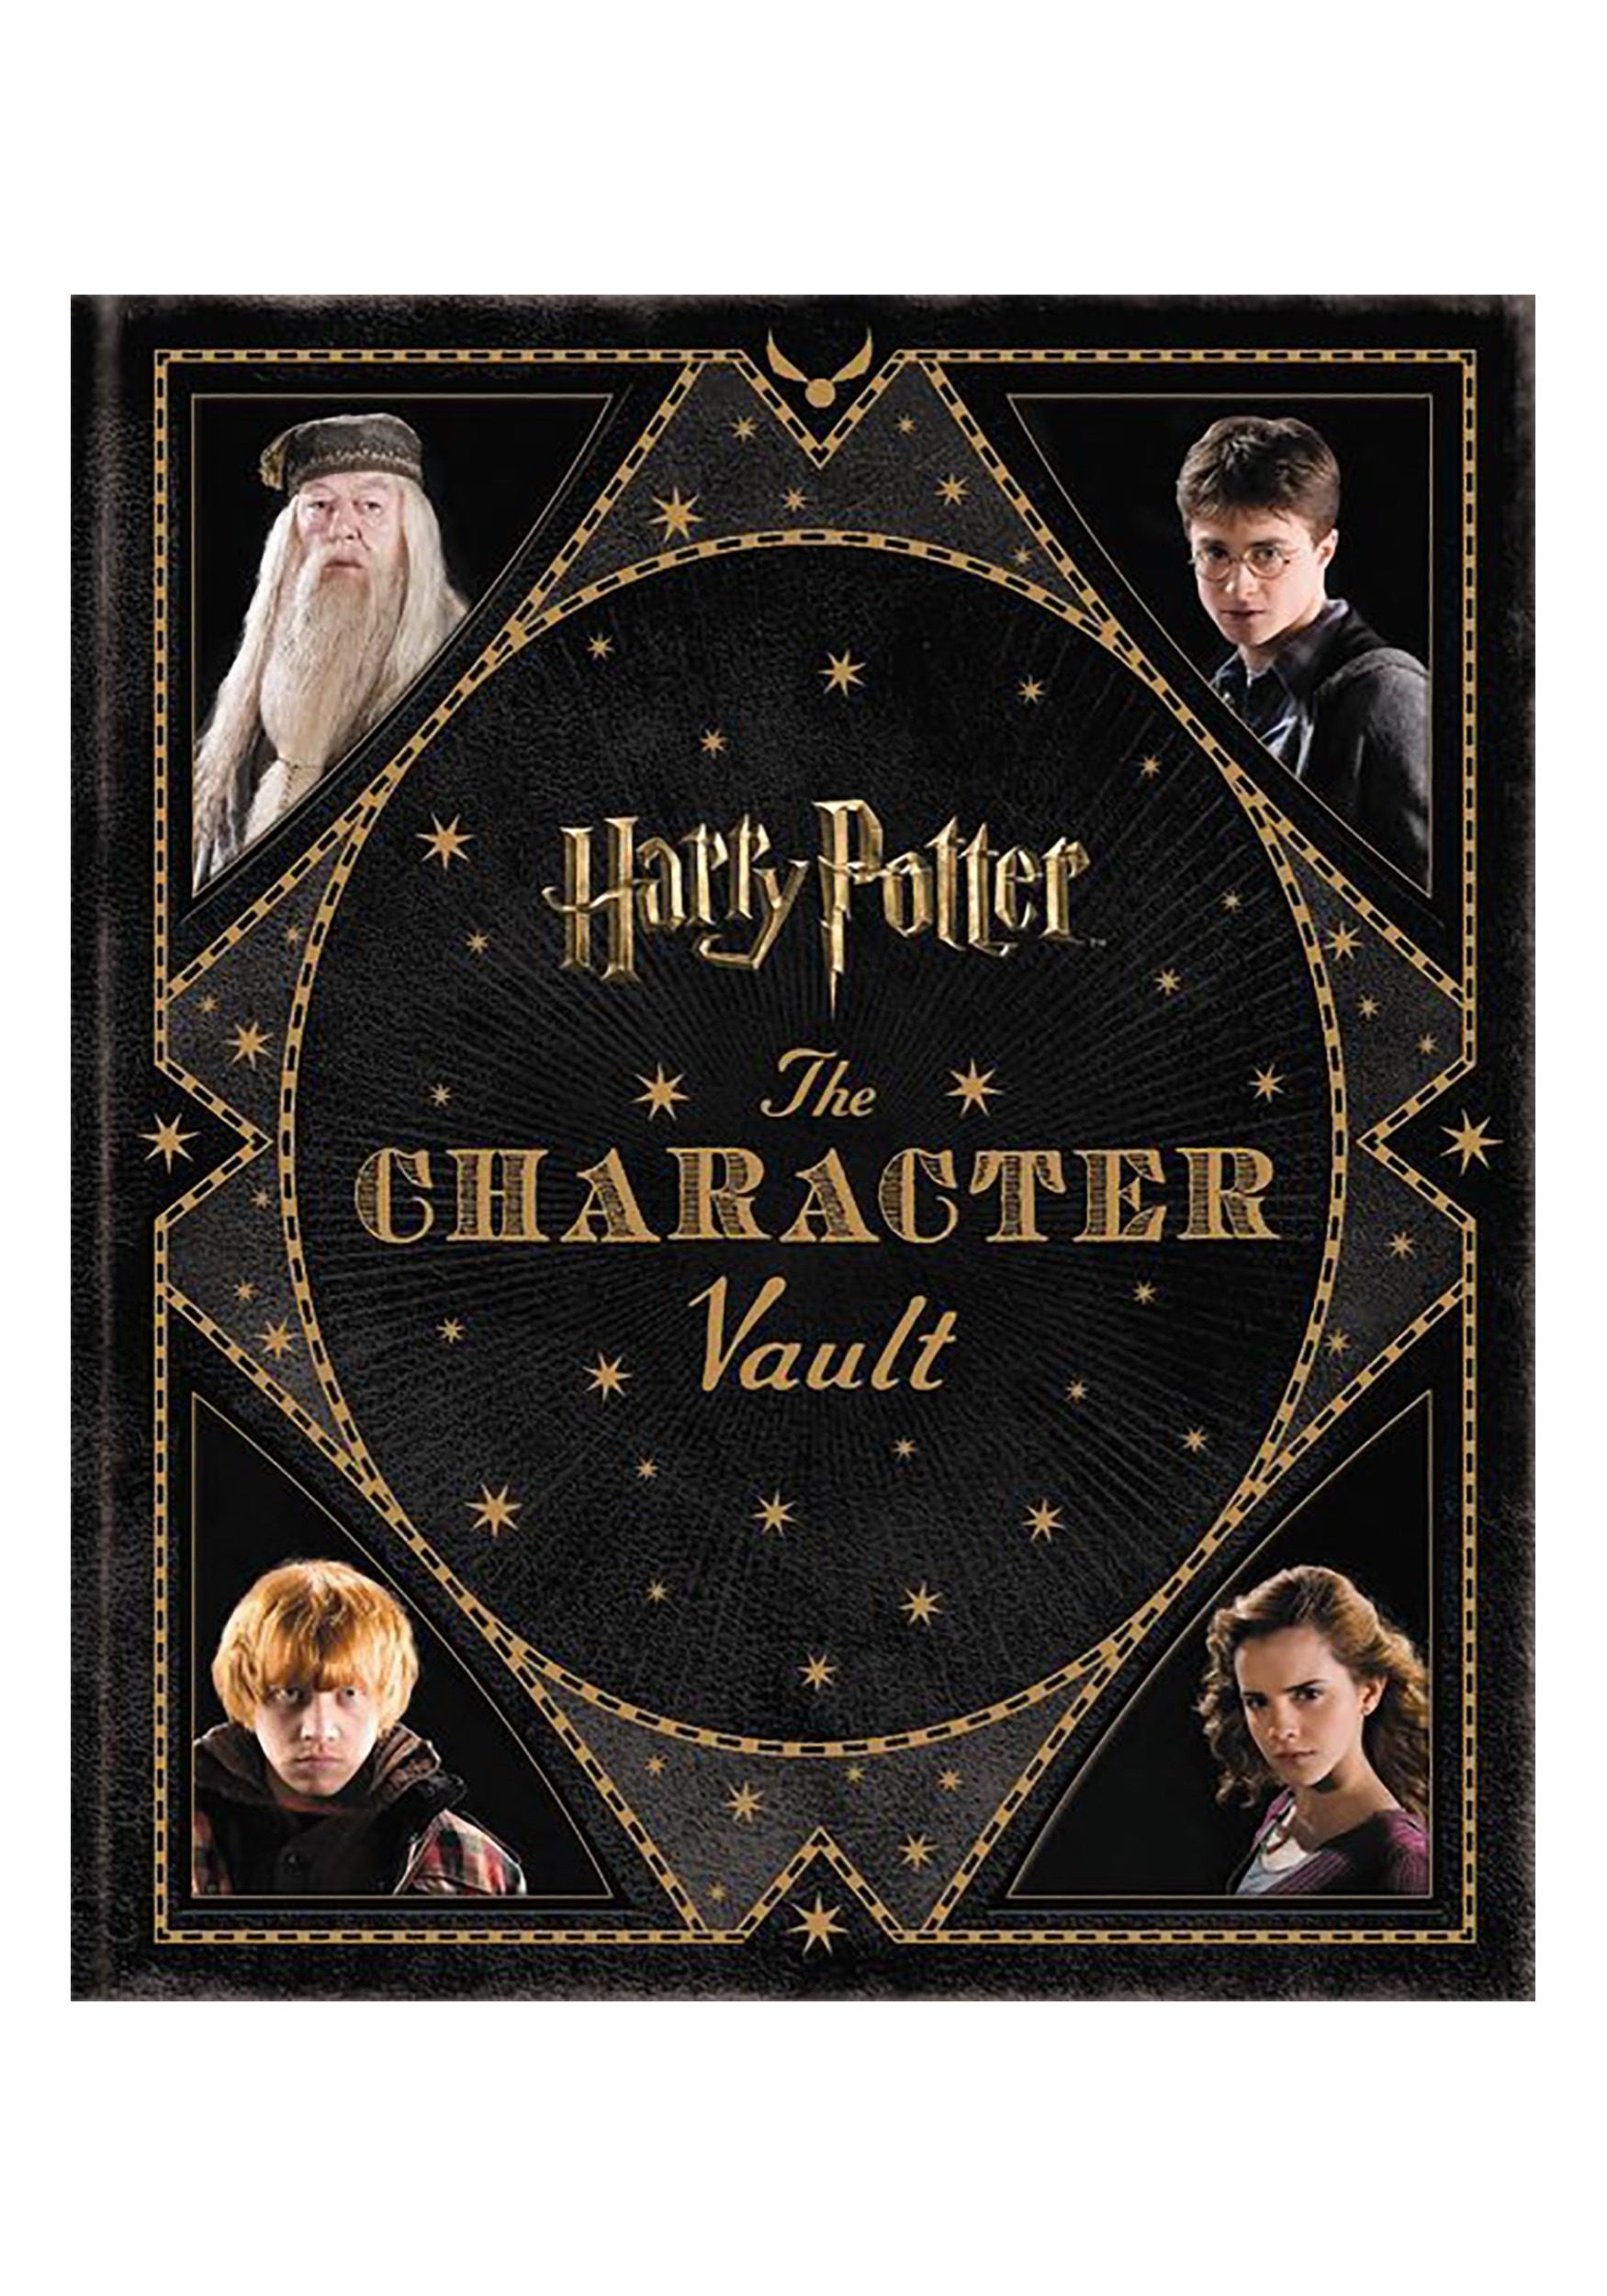 Harry Potter: The Character Vault Hardcover Book